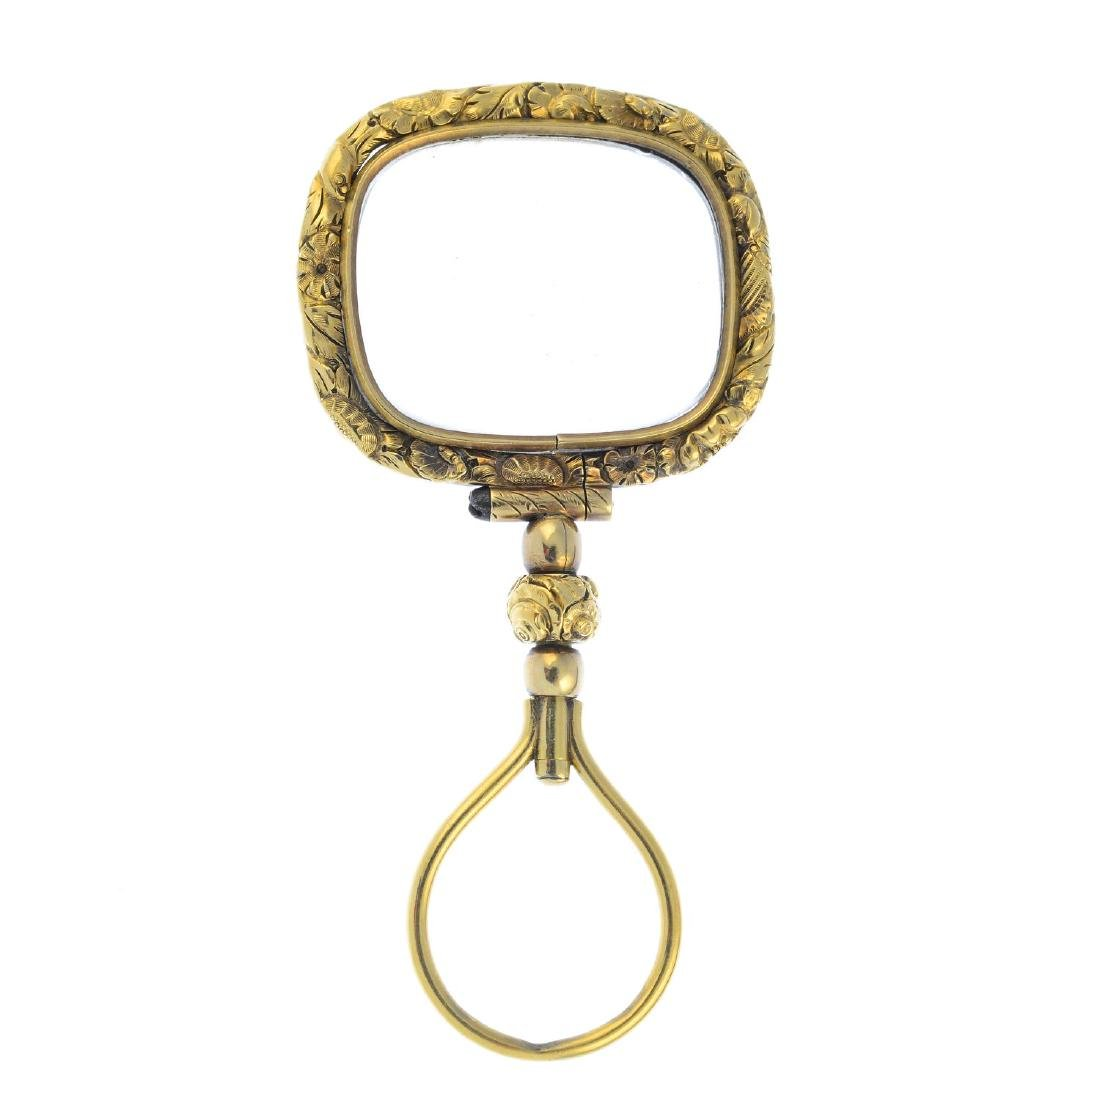 A mid Victorian gold magnifying glass. The